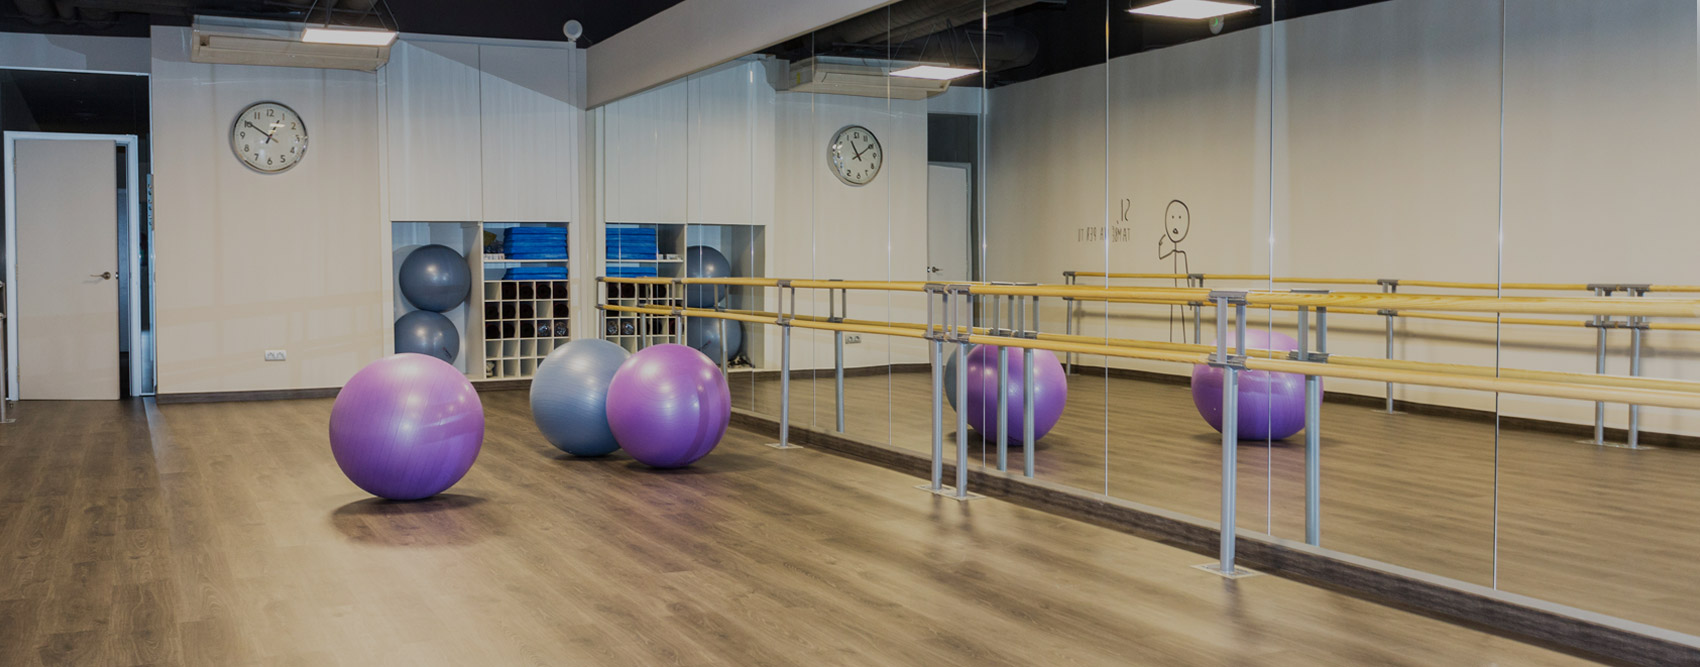 Postural Fit Barcelona aula clases